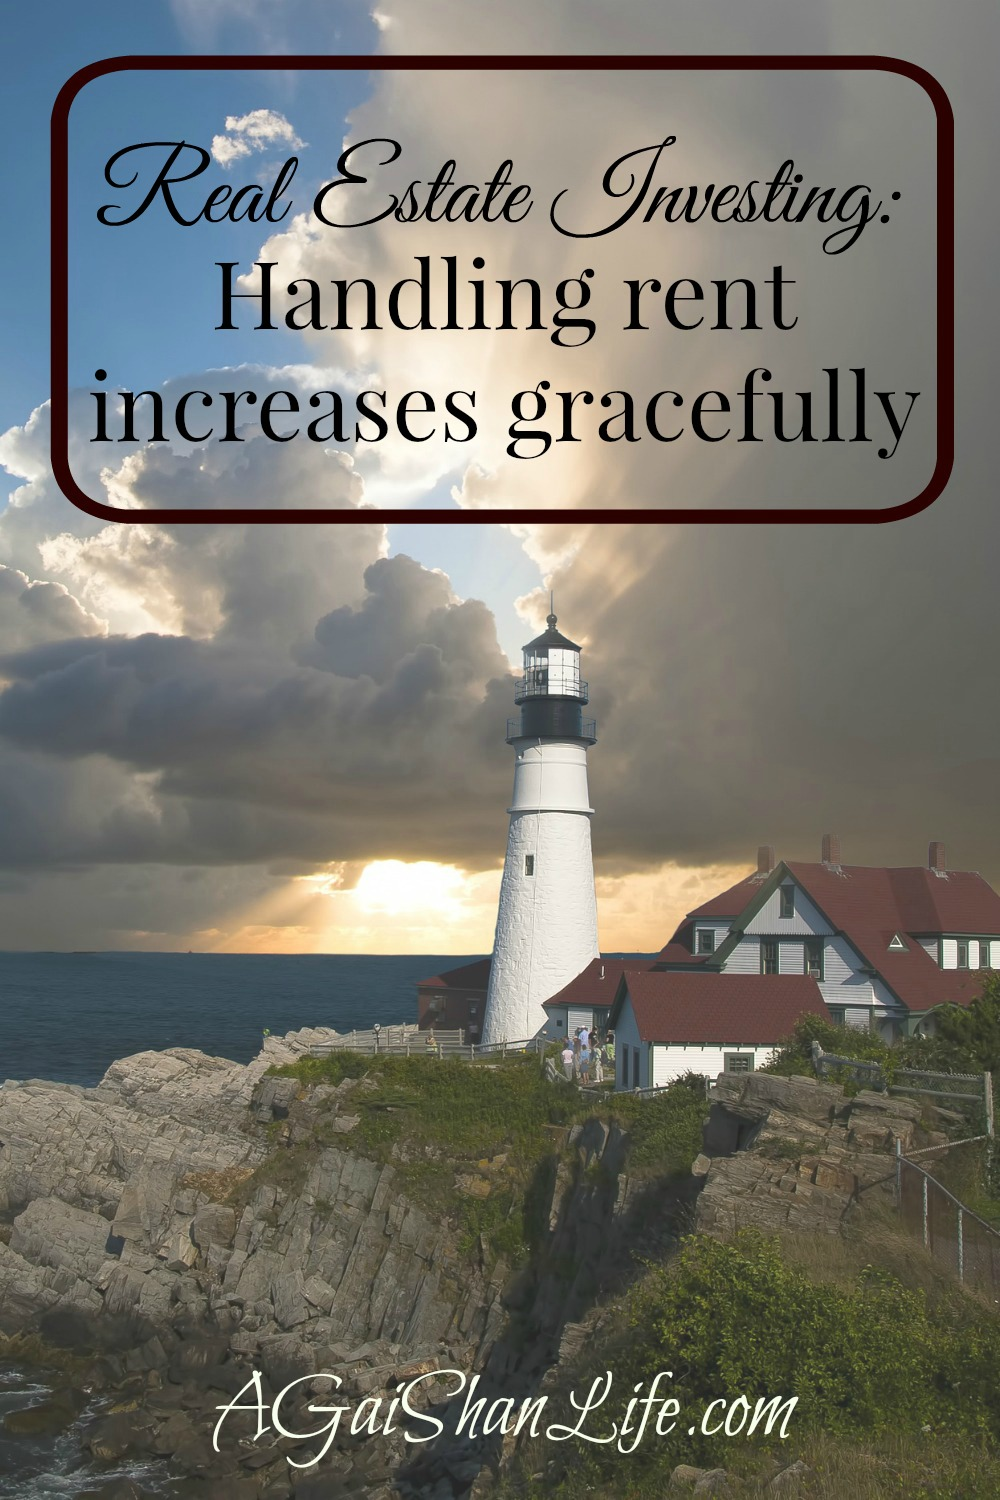 Real estate investing: handling rent increases gracefully